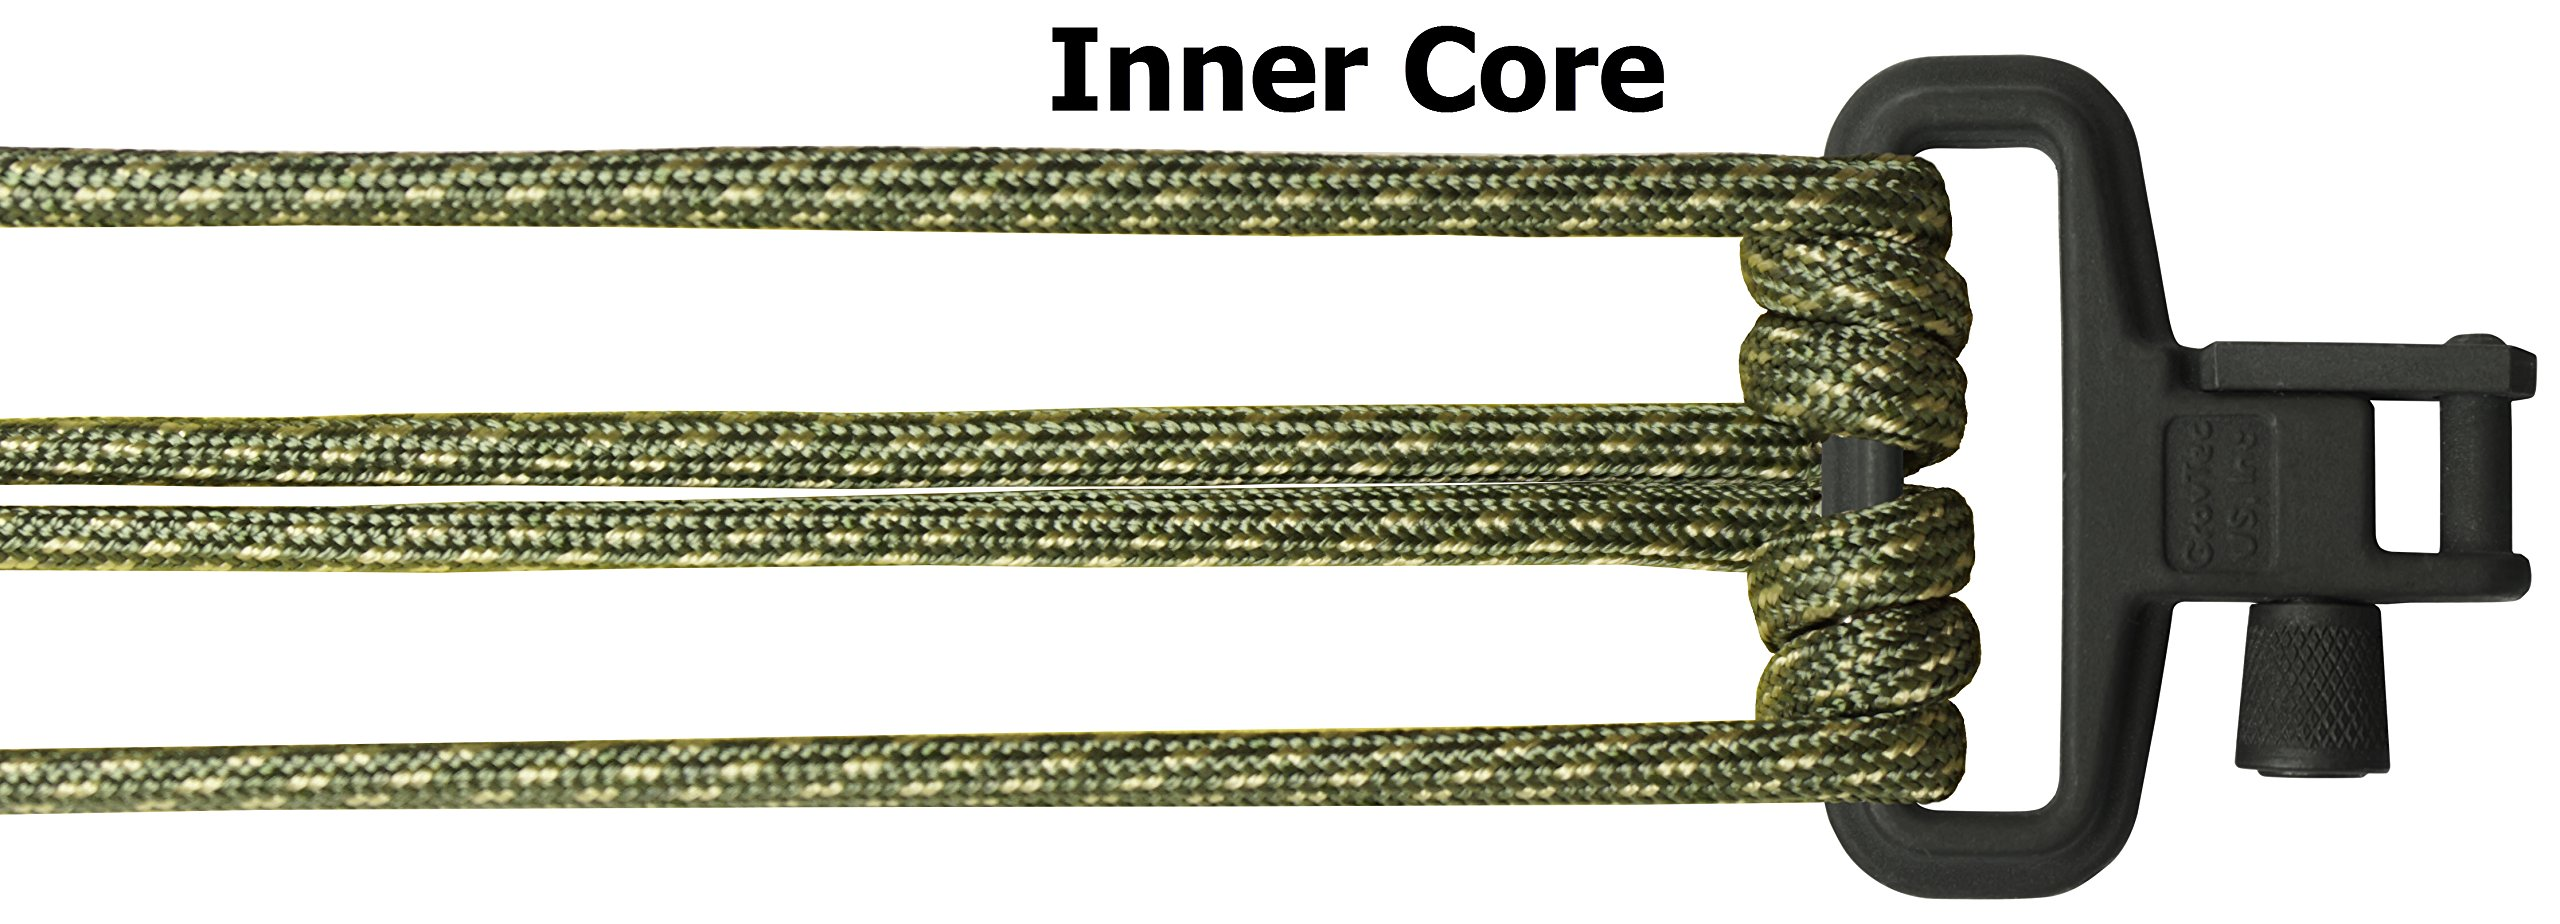 TOUGH-GRID Backbone(TM) Paracord Rifle Sling - Gun Sling/Rifle Sling - Handmade in The USA with Authentic Mil-Spec 750lb Type IV Paracord and Mil-Spec Swivels (BackBone105DGCBoa) by TOUGH-GRID (Image #5)